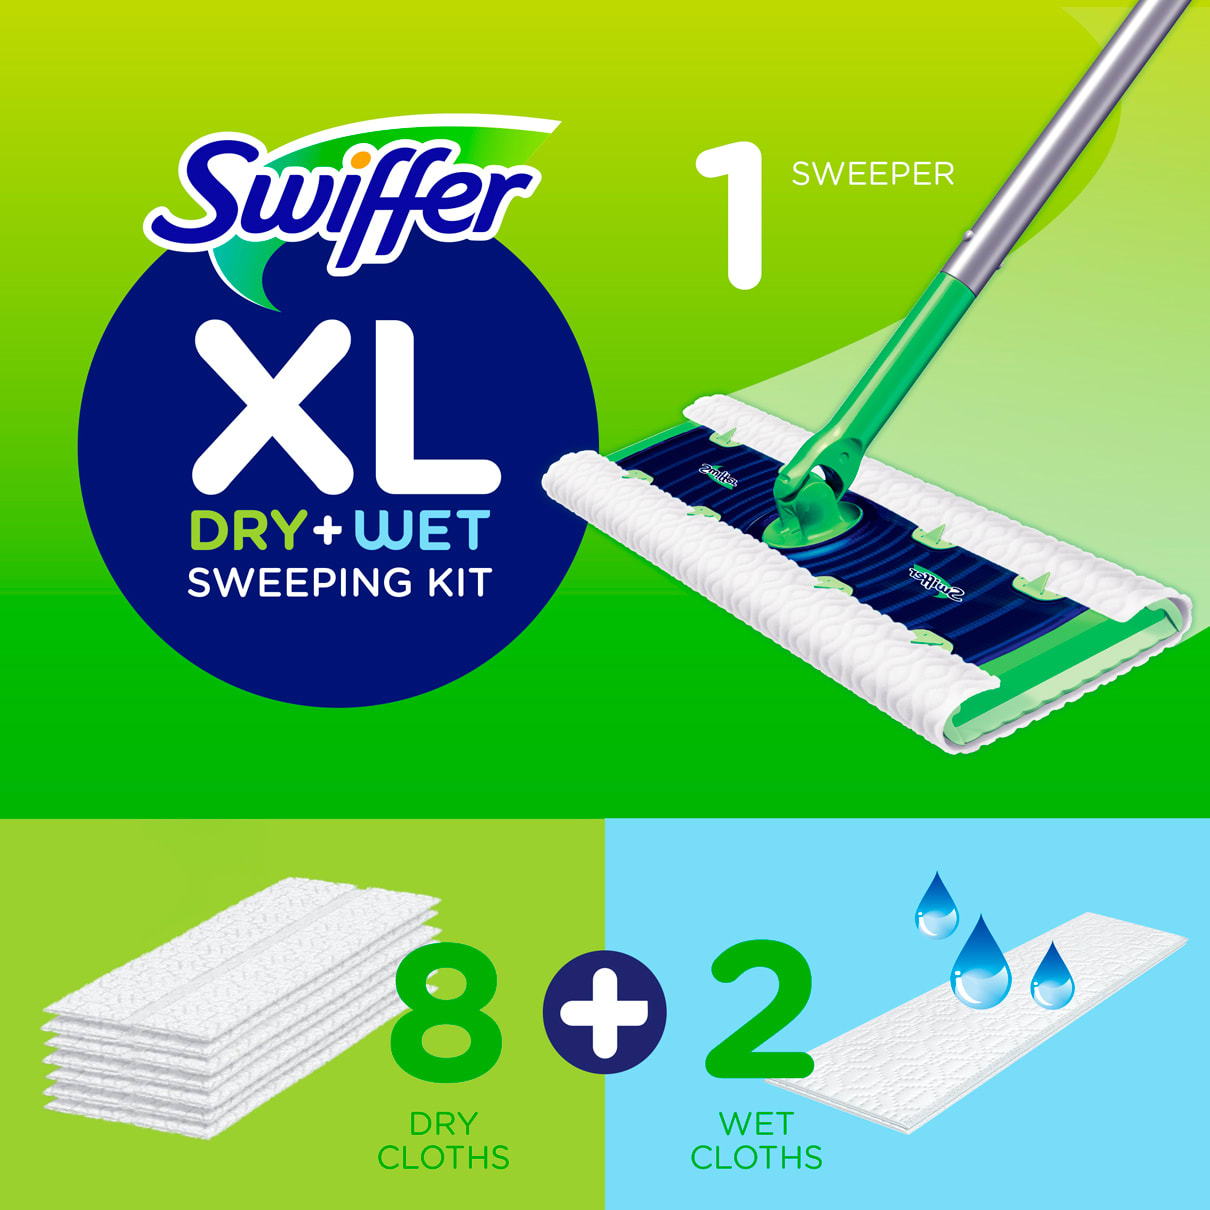 Swiffer Sweeper XL Dry+Wet Sweeping Kit